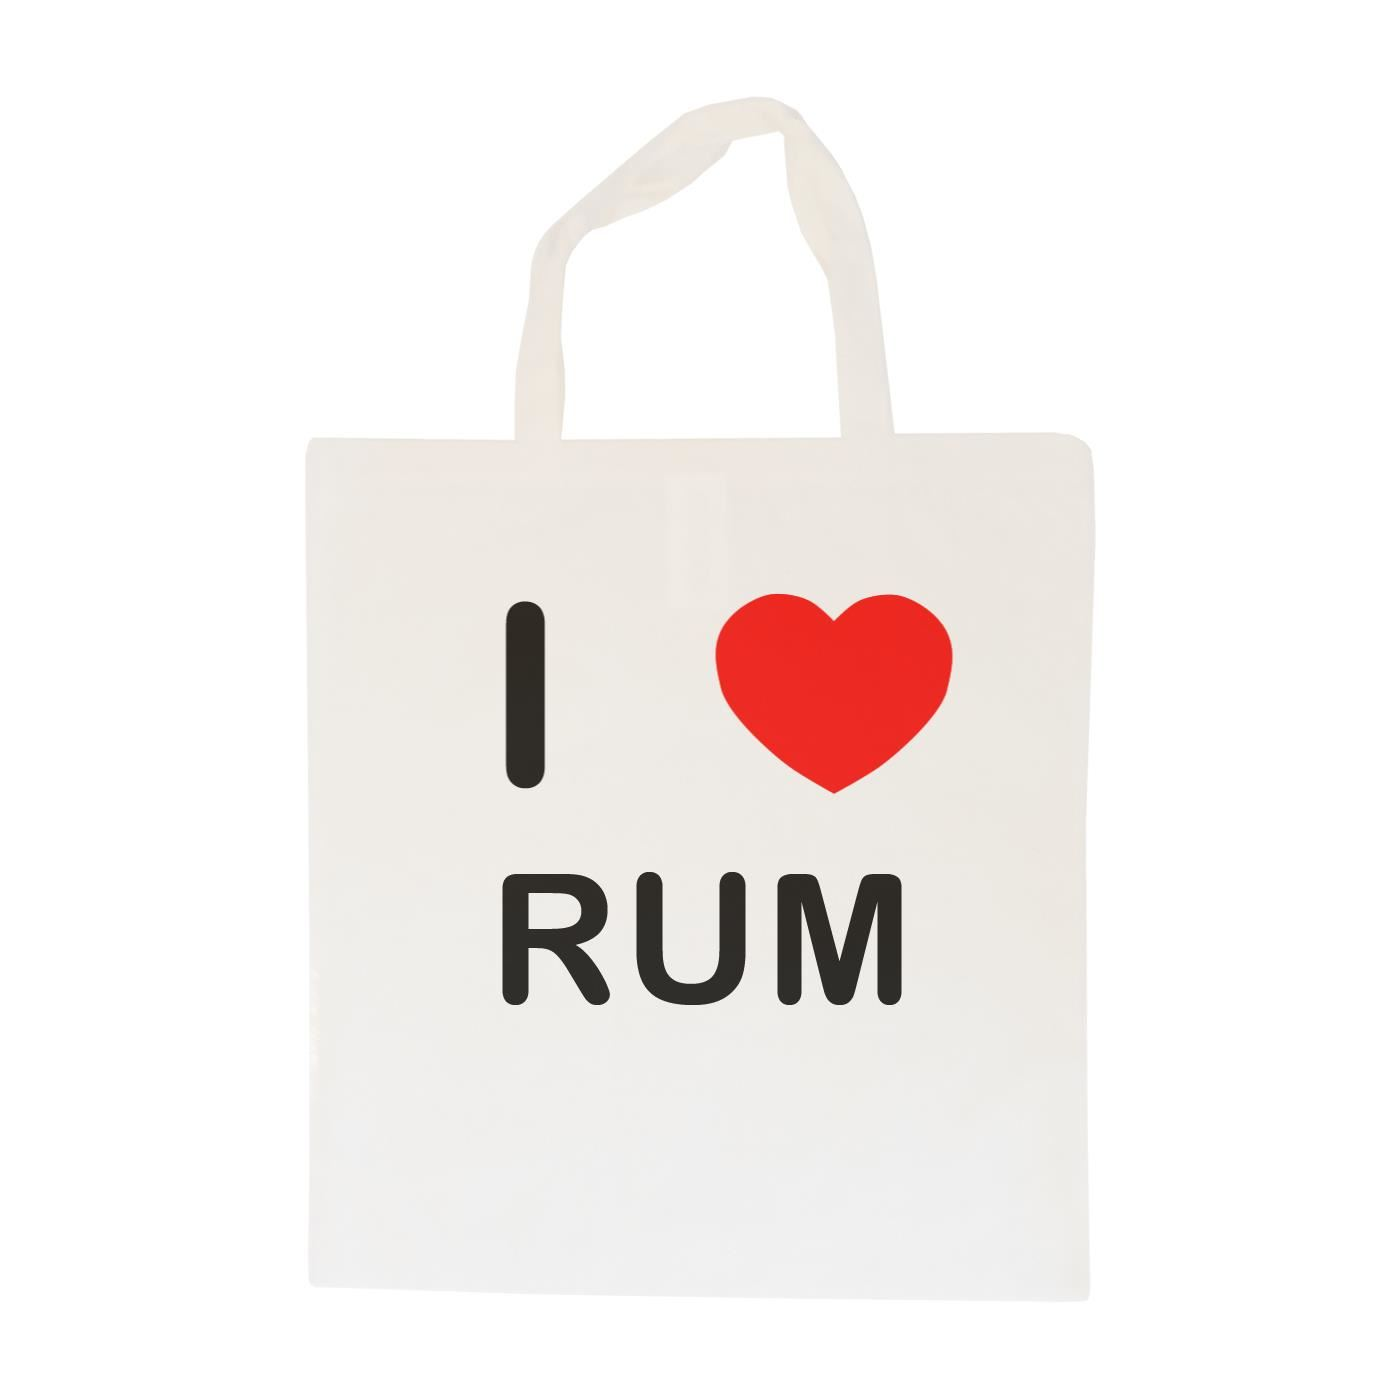 I Love Rum - Cotton Bag | Size choice Tote, Shopper or Sling